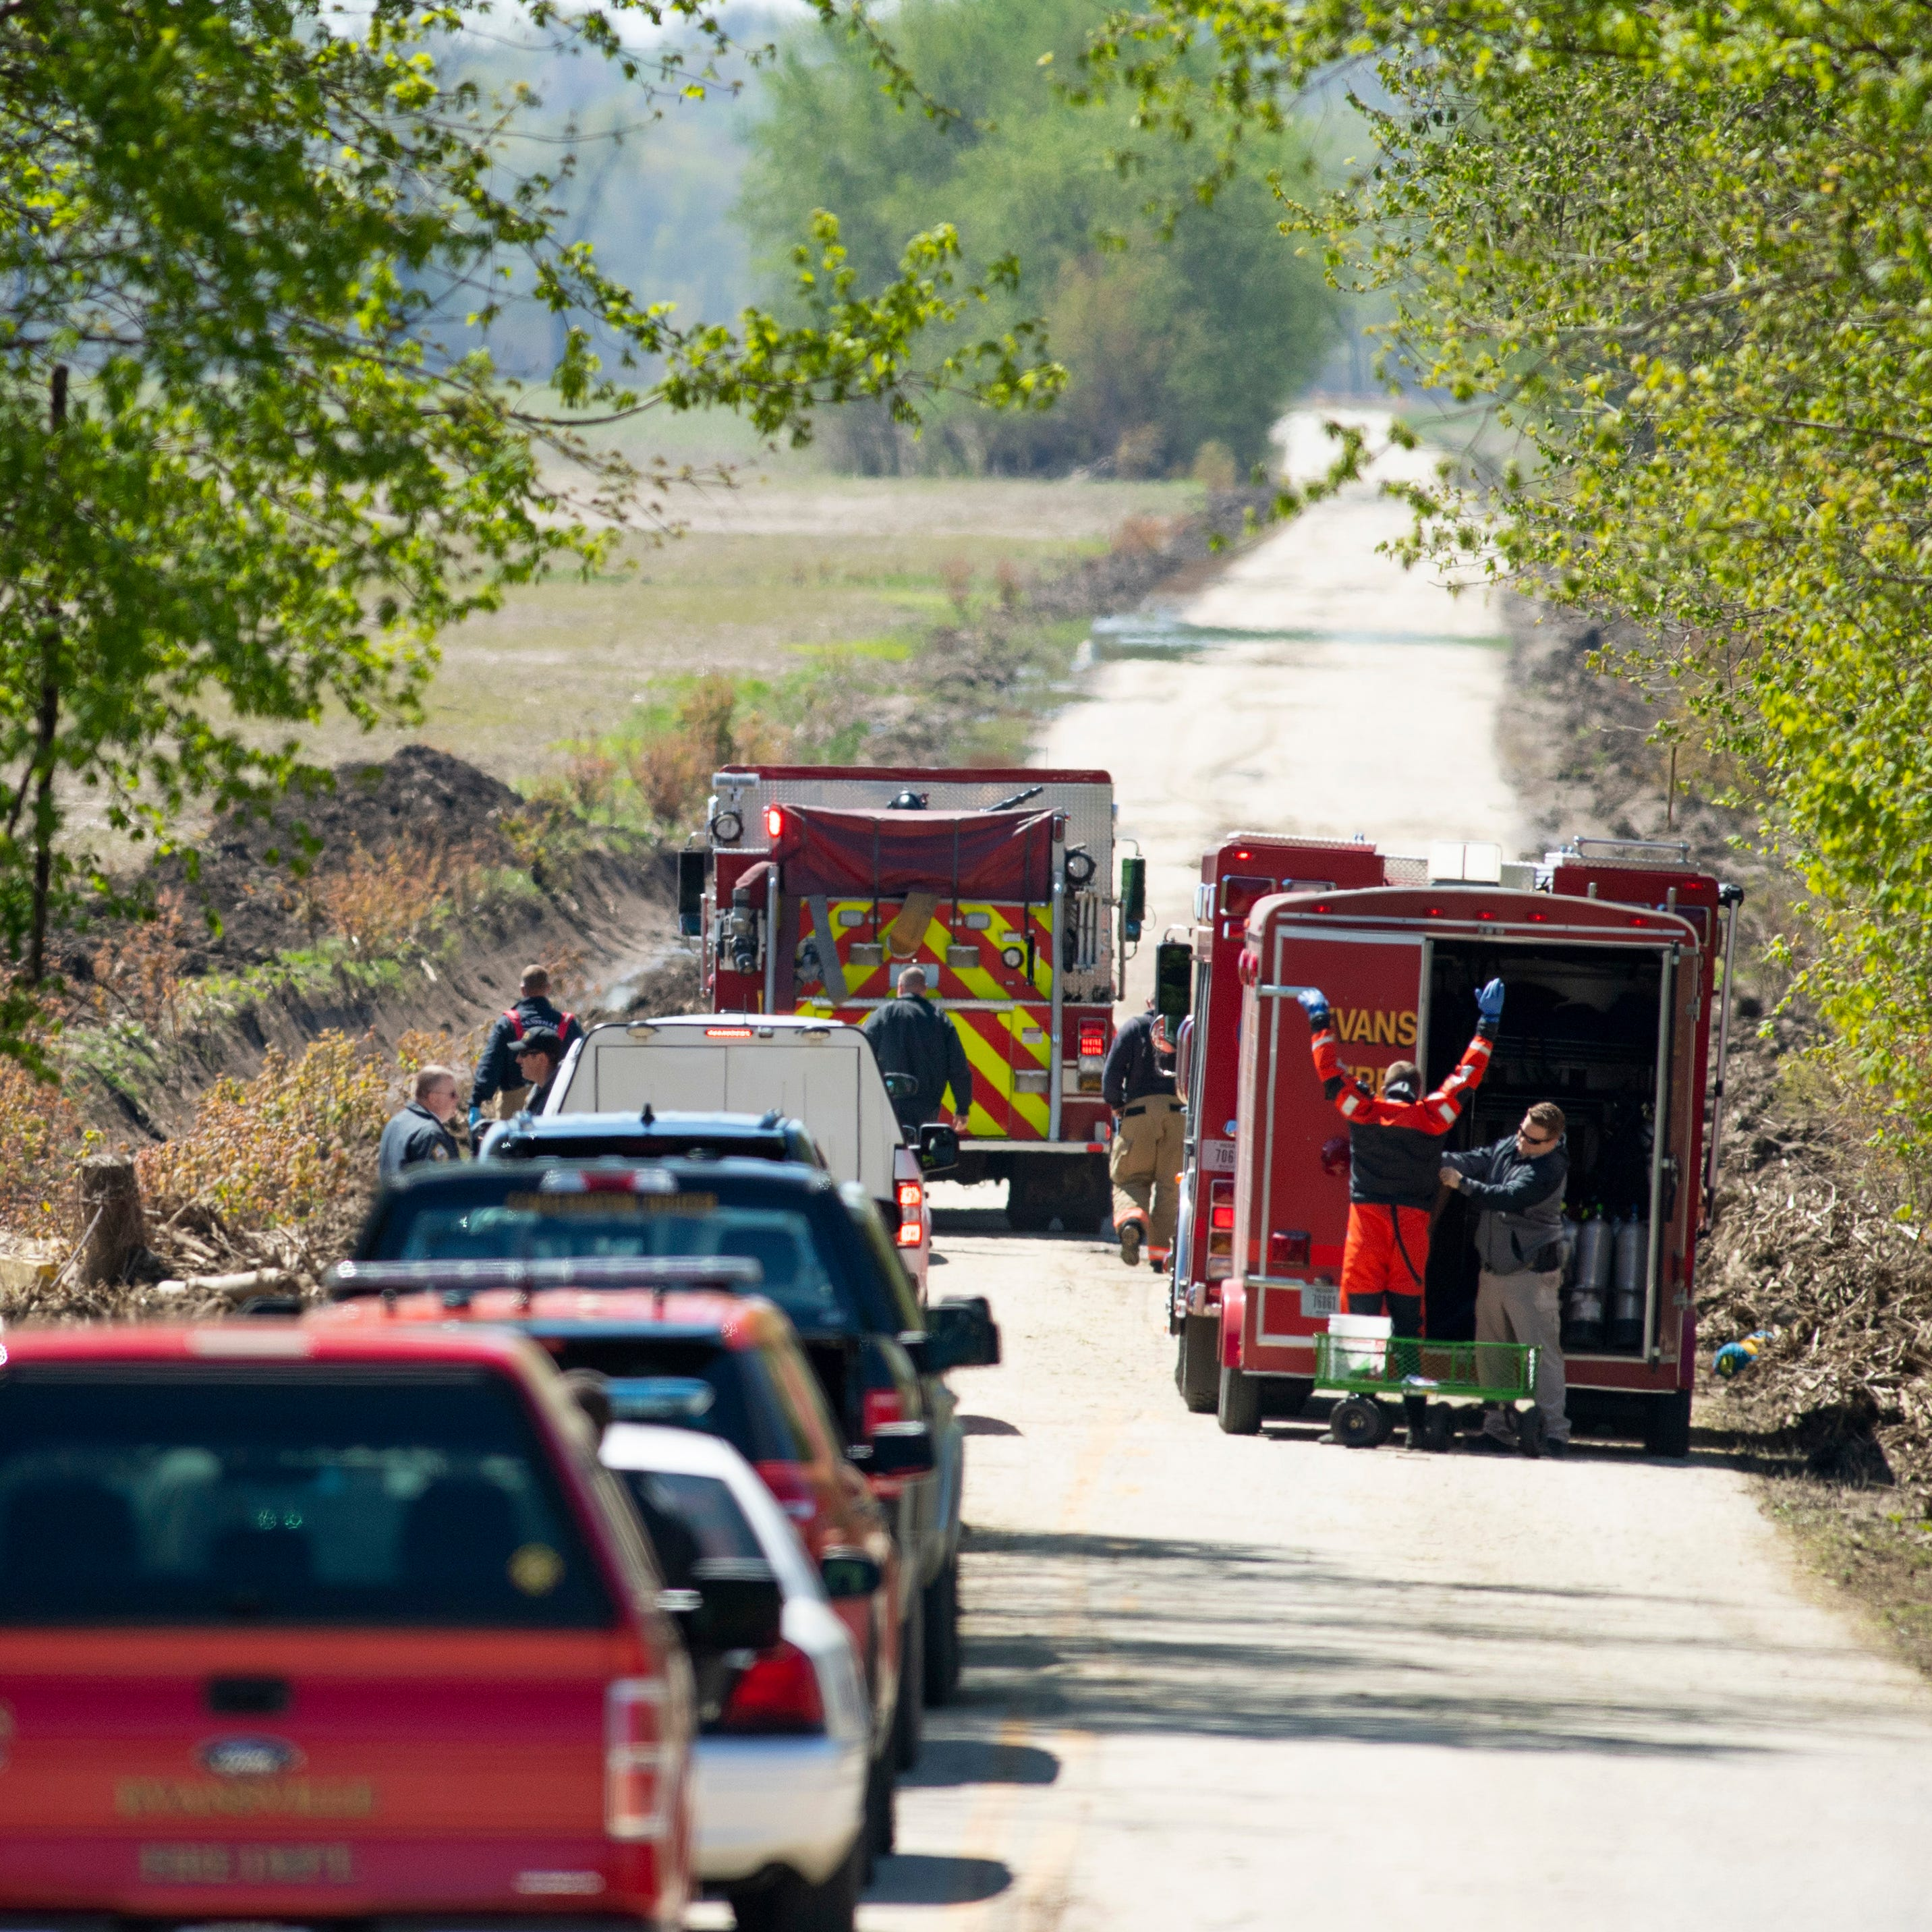 While investigating missing person, Evansville rescue workers find dead body